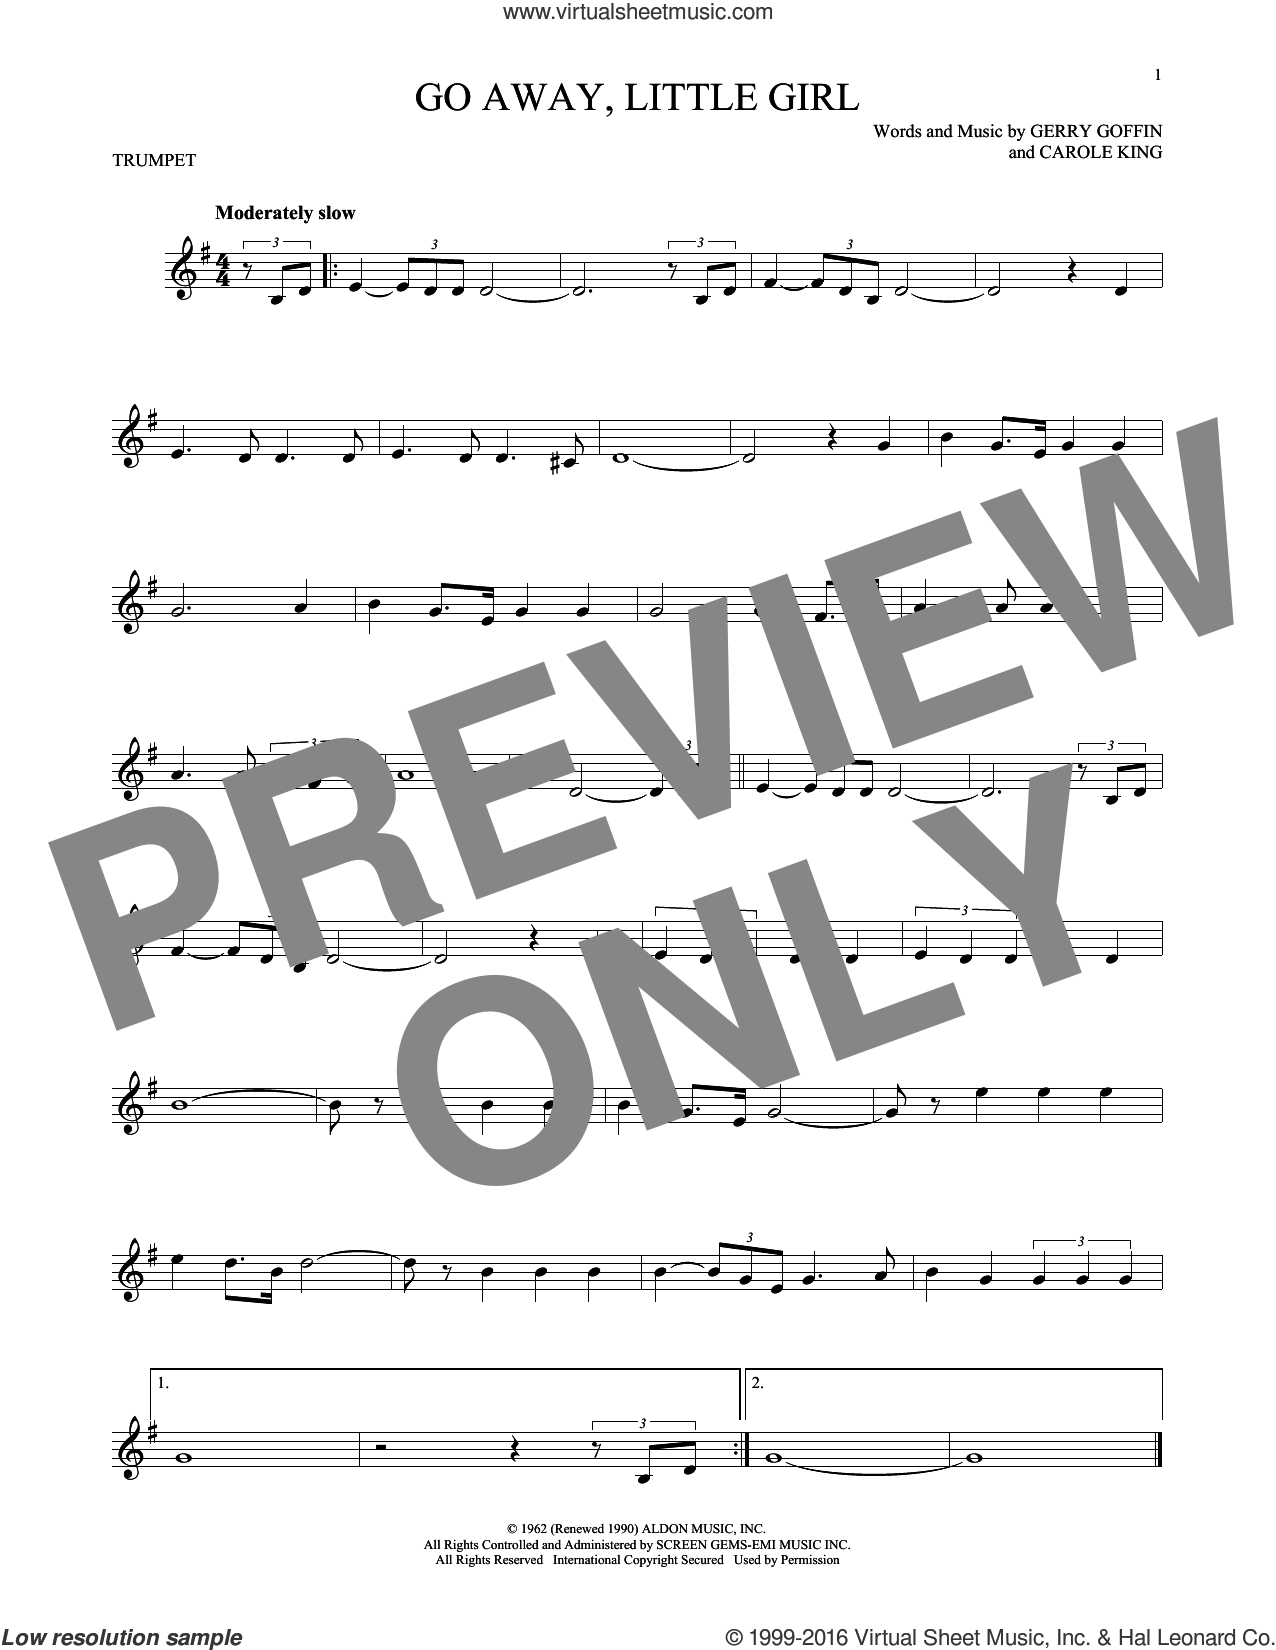 Go Away, Little Girl sheet music for trumpet solo by Donny Osmond, Steve Lawrence, Carole King and Gerry Goffin, intermediate trumpet. Score Image Preview.